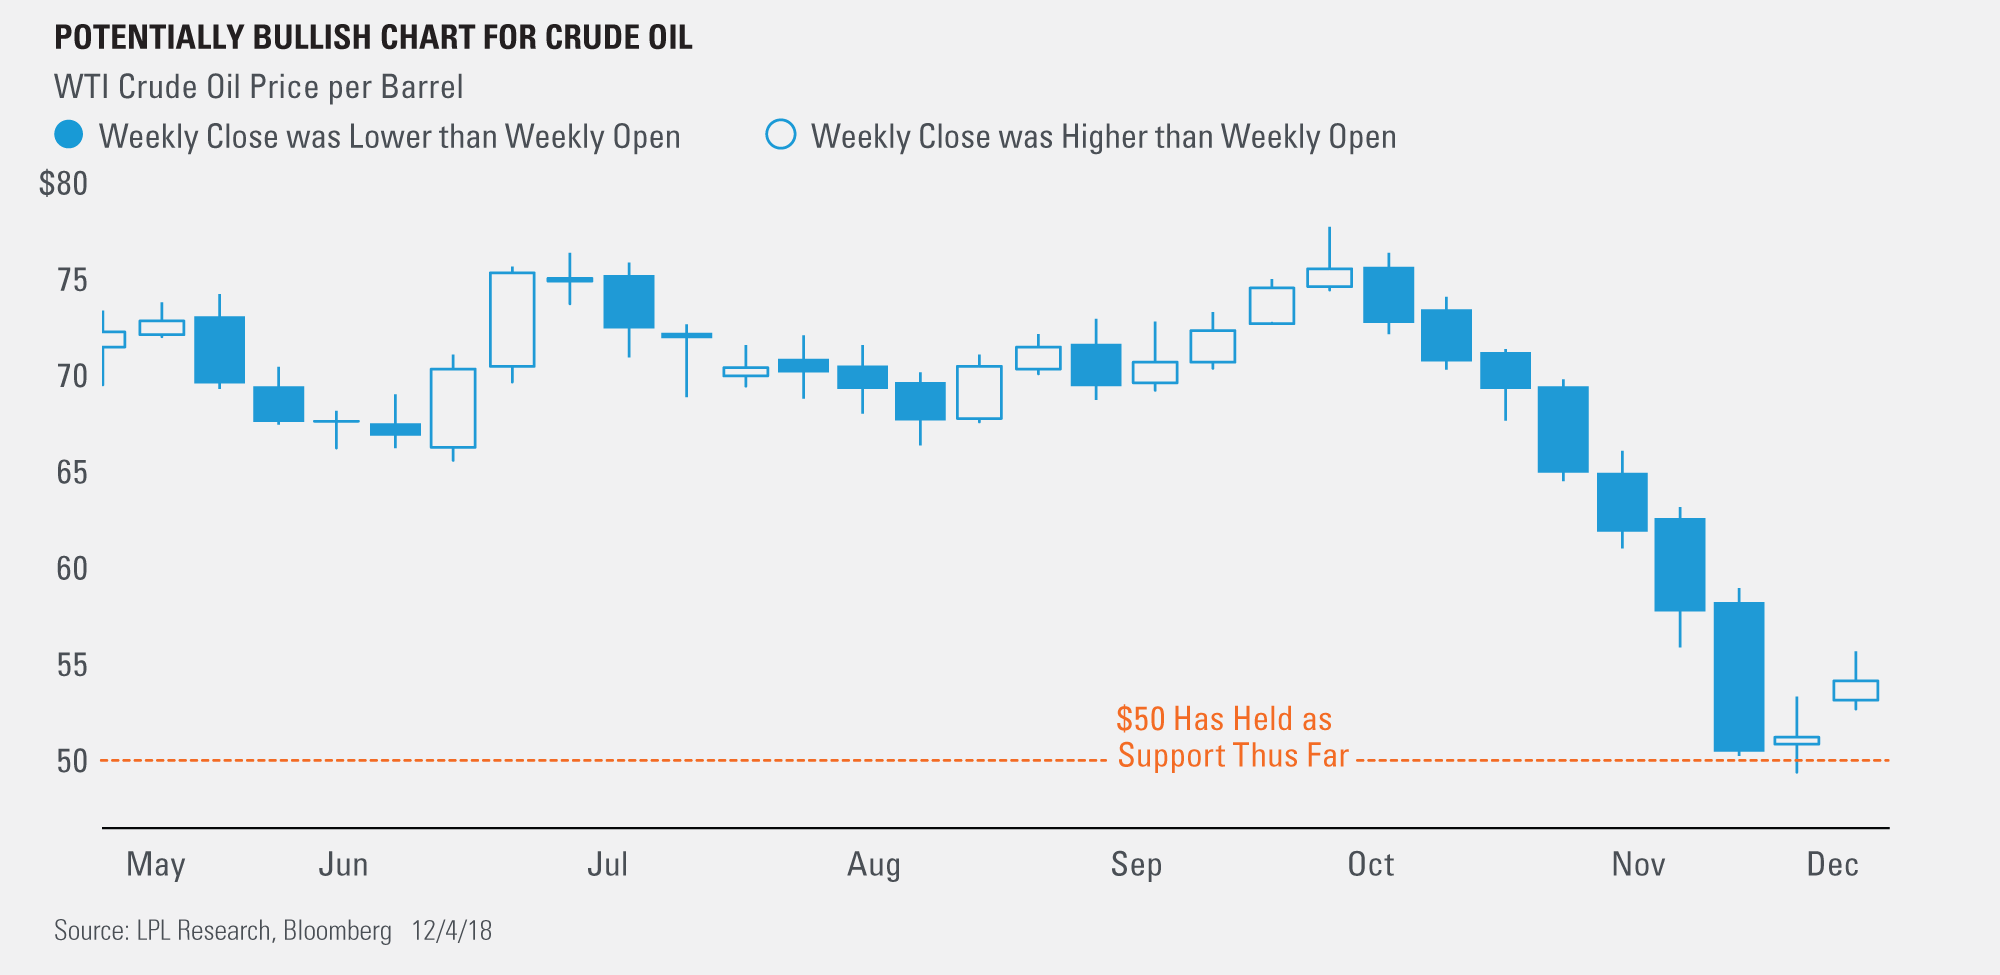 Potentially bullish chart for crude oil